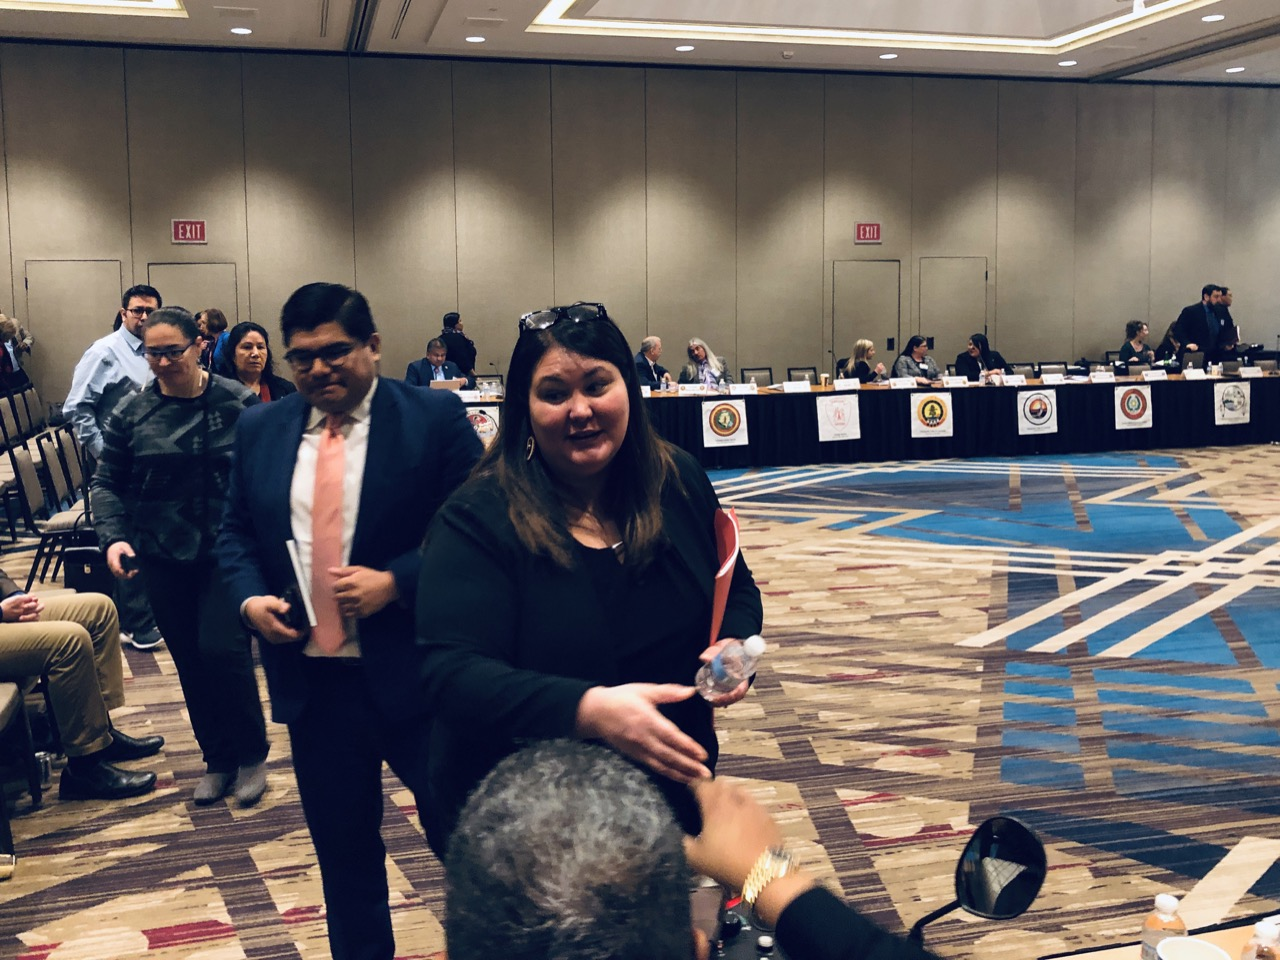 Senate Committee on Indian Affairs takes yet another look at 'high-risk' programs